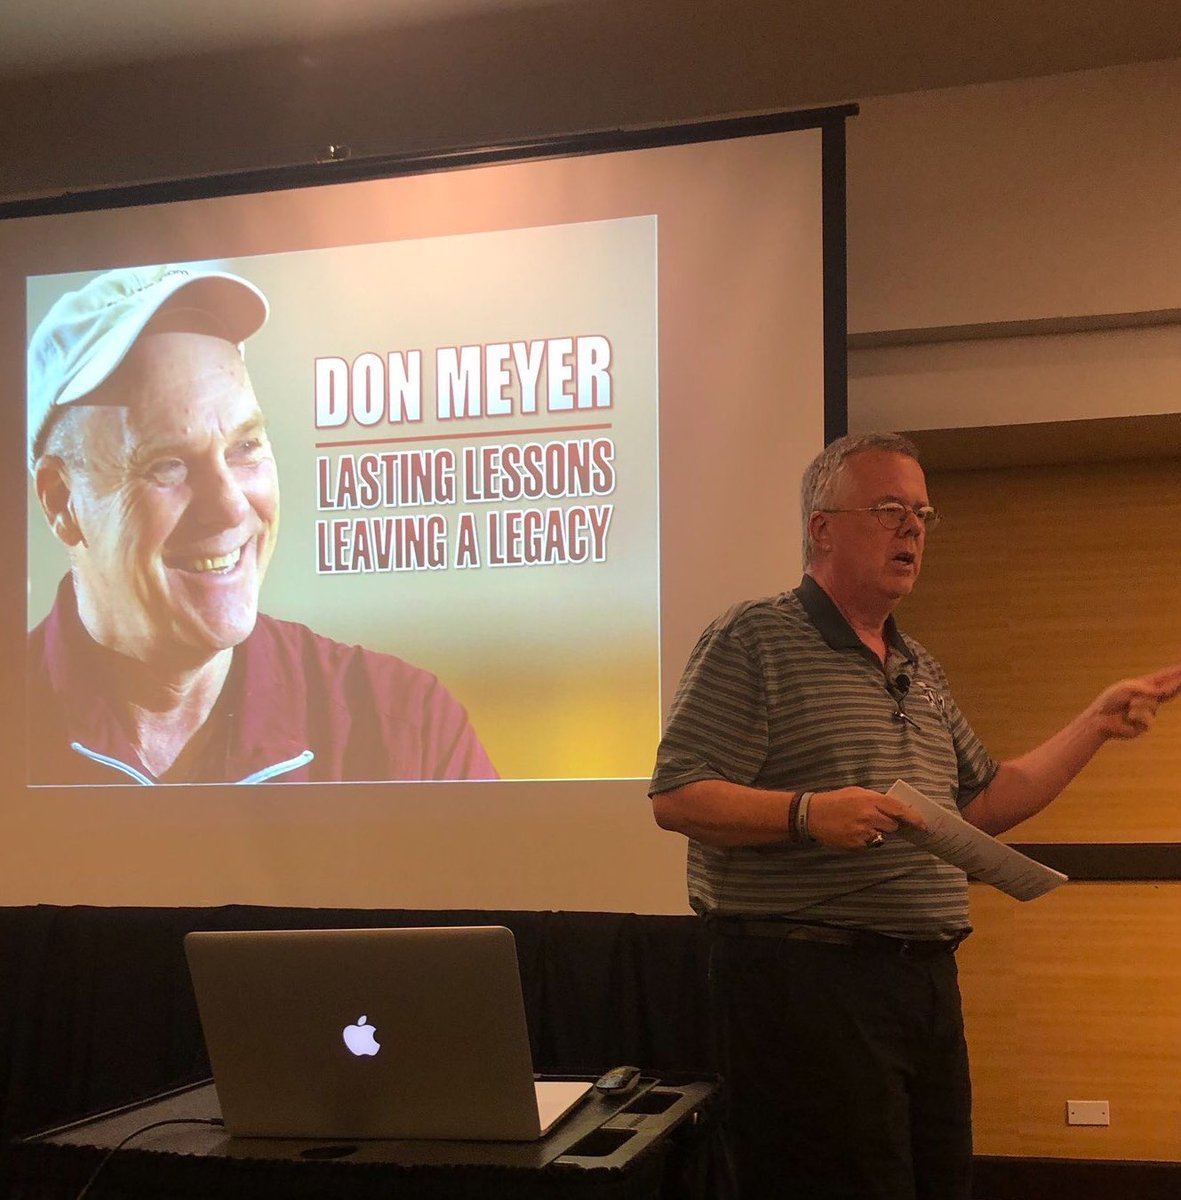 With today the anniversary of Coach Meyer's passing, I was blessed to speak on his teachings last night to a packed room at @tabchoops (thanks to my publicist @teamcoachbuzz). So many stayed around to share @CoachDonMeyer stories with me which made it that more special.<br>http://pic.twitter.com/RvWGjuOl6o